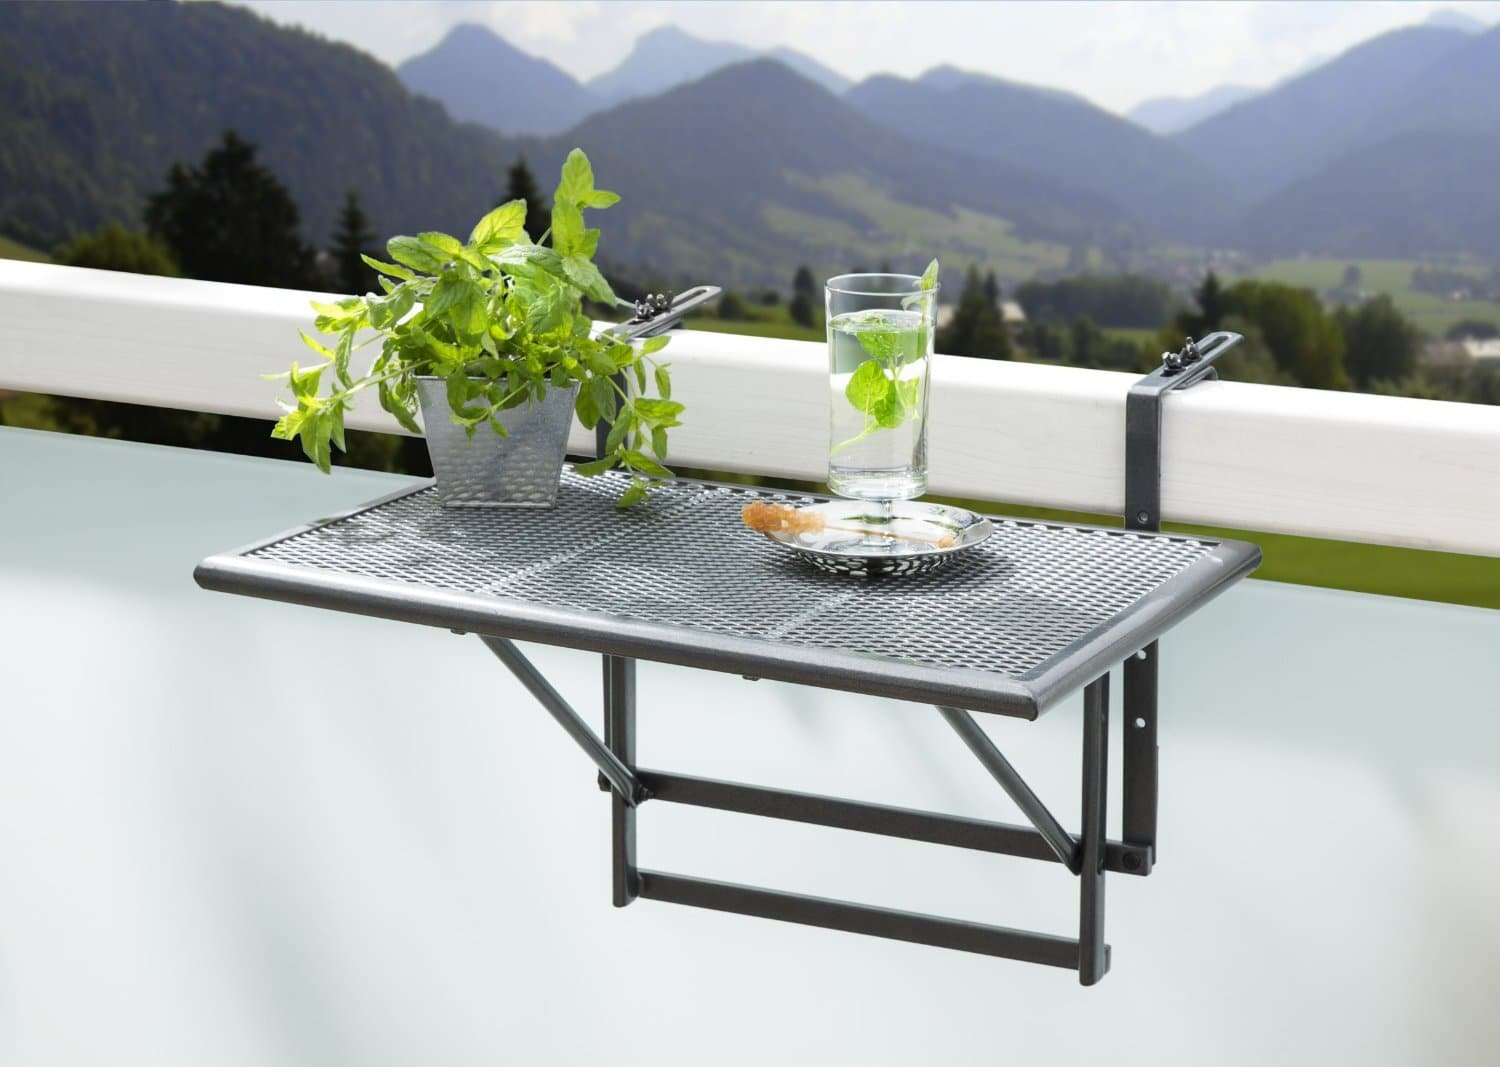 table pour balcon objet maison insolite mr etrange. Black Bedroom Furniture Sets. Home Design Ideas